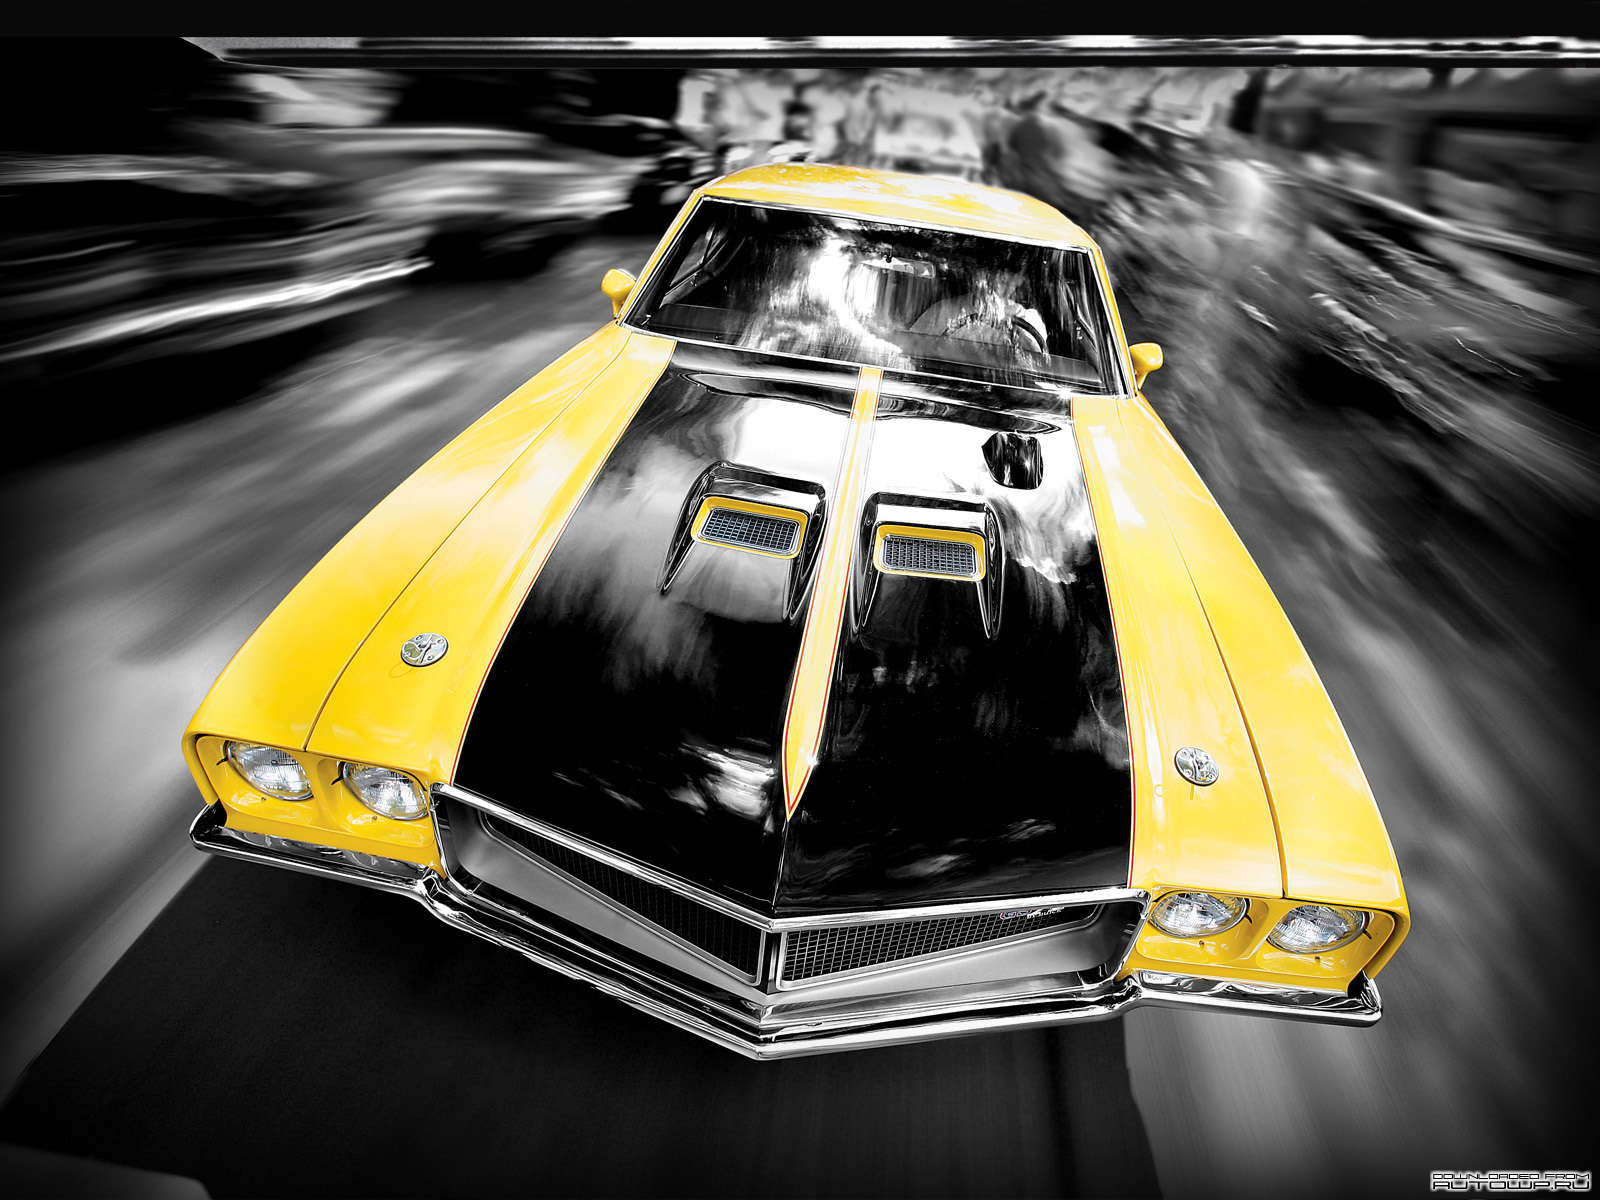 Wallpaper Of Muscle Cars Wallpapersafari